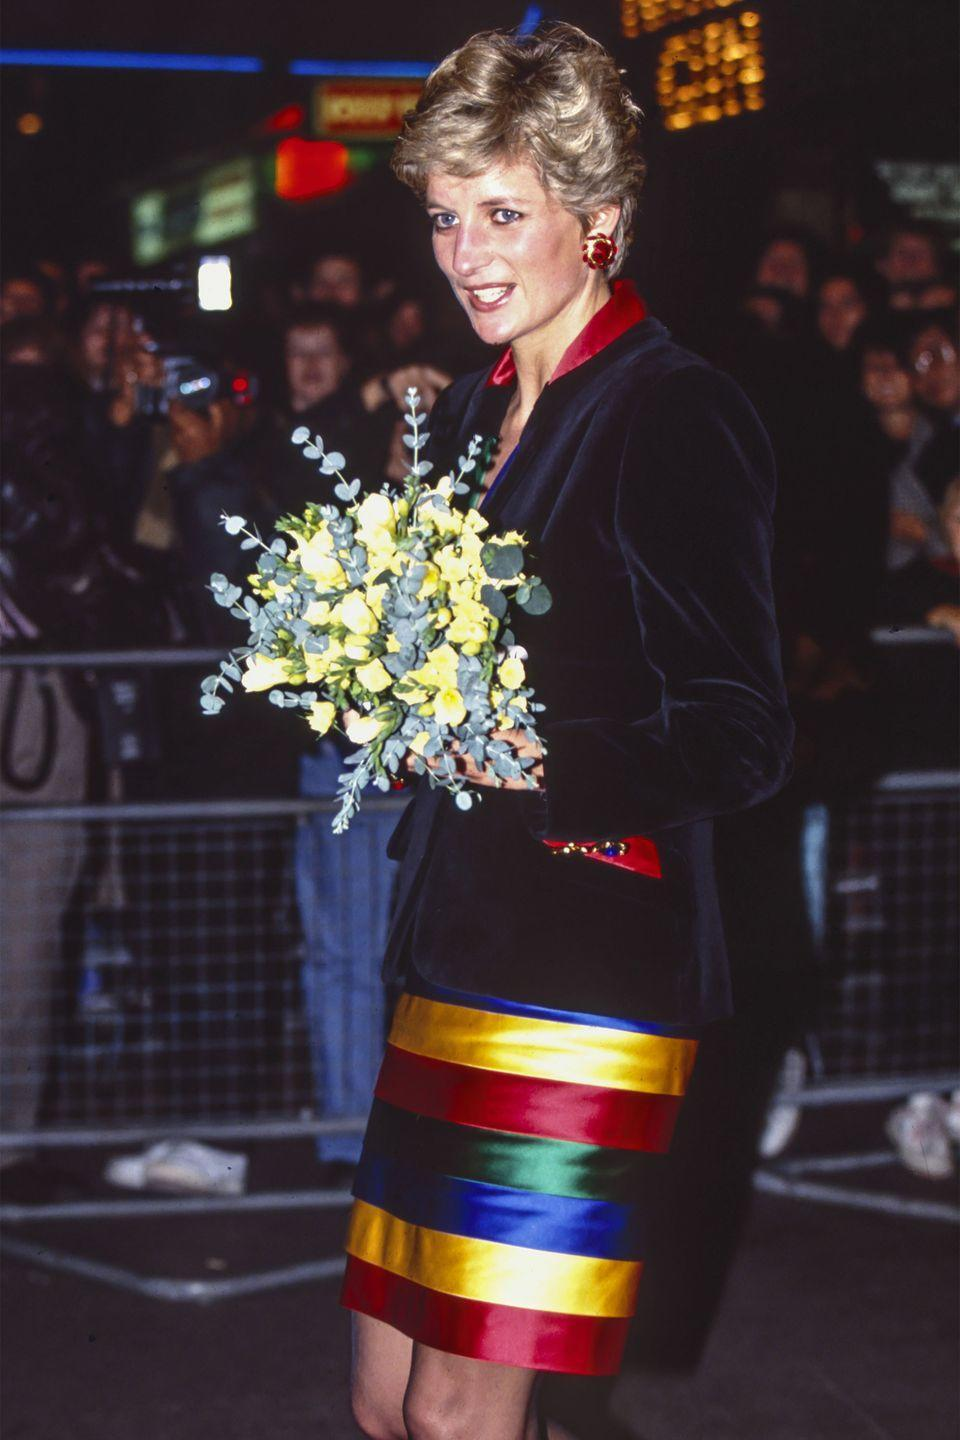 <p>In a metallic striped strapless dress and velvet blazer attending a rock concert in London. </p>